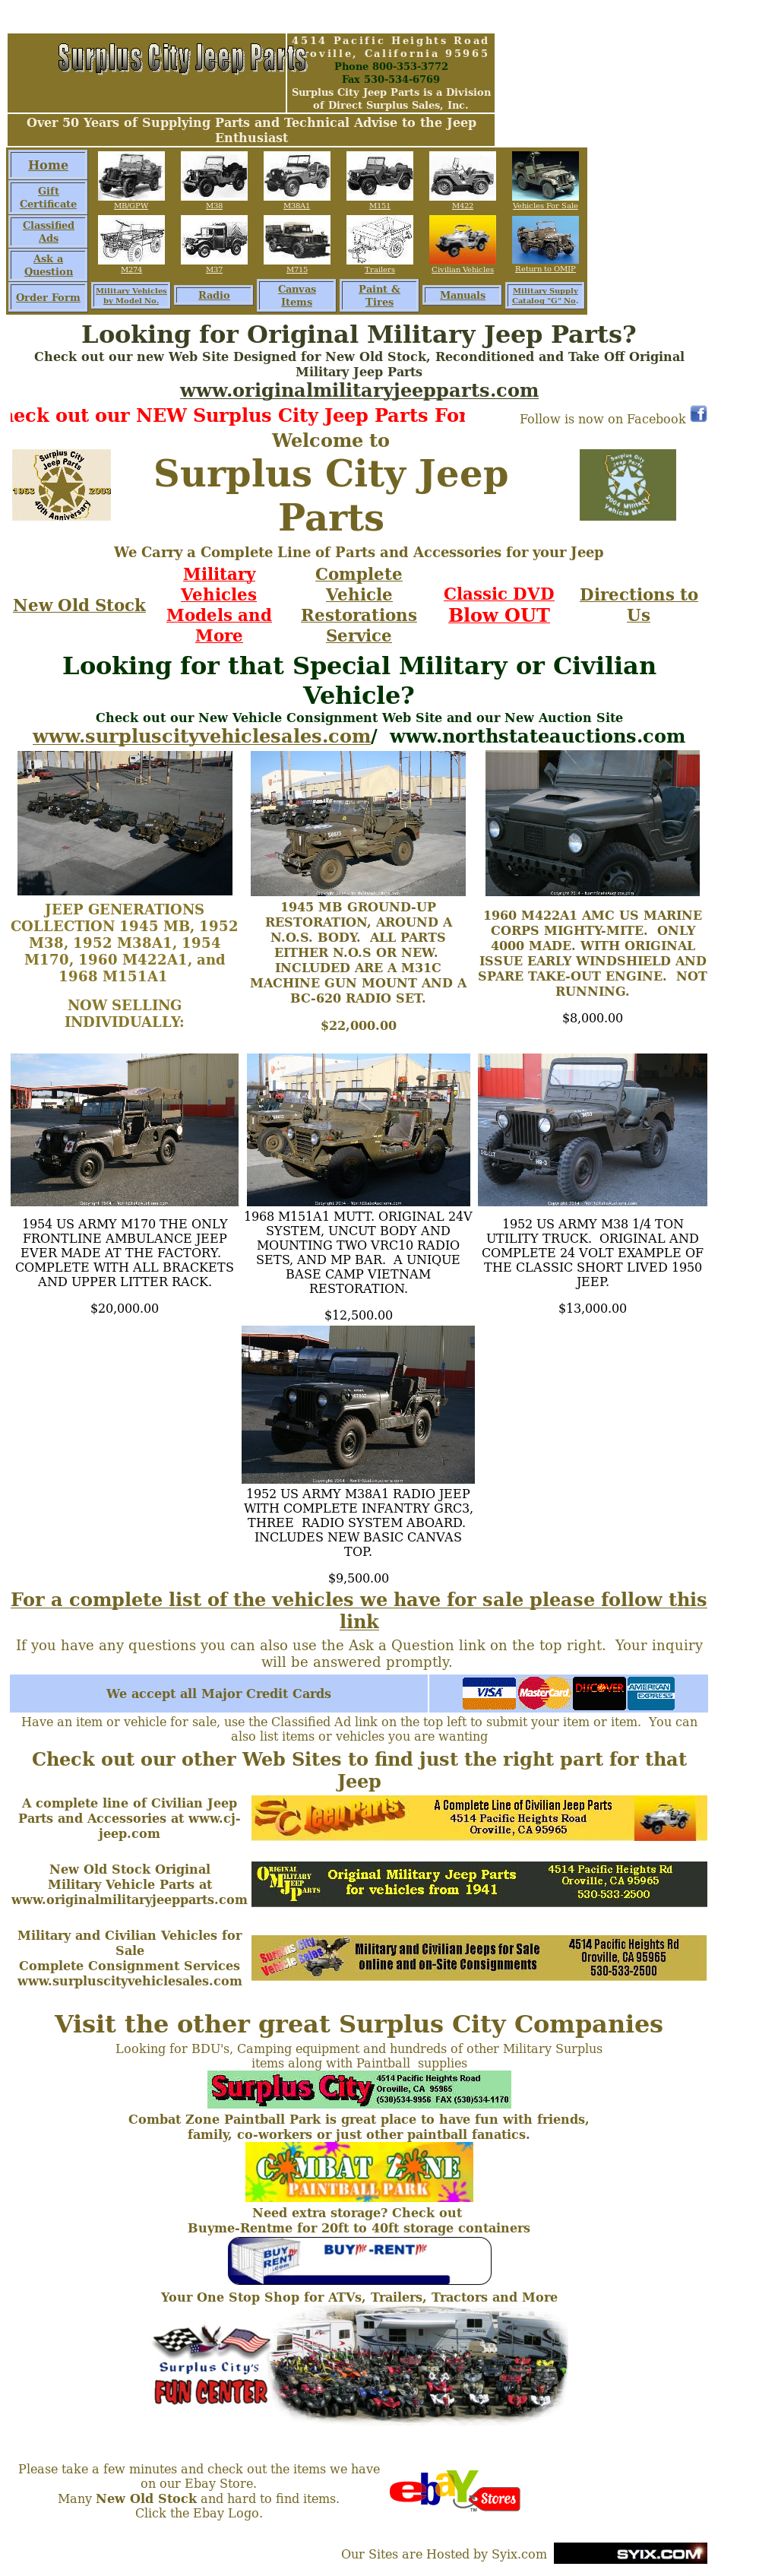 Surplusjeep Competitors, Revenue and Employees - Owler Company Profile